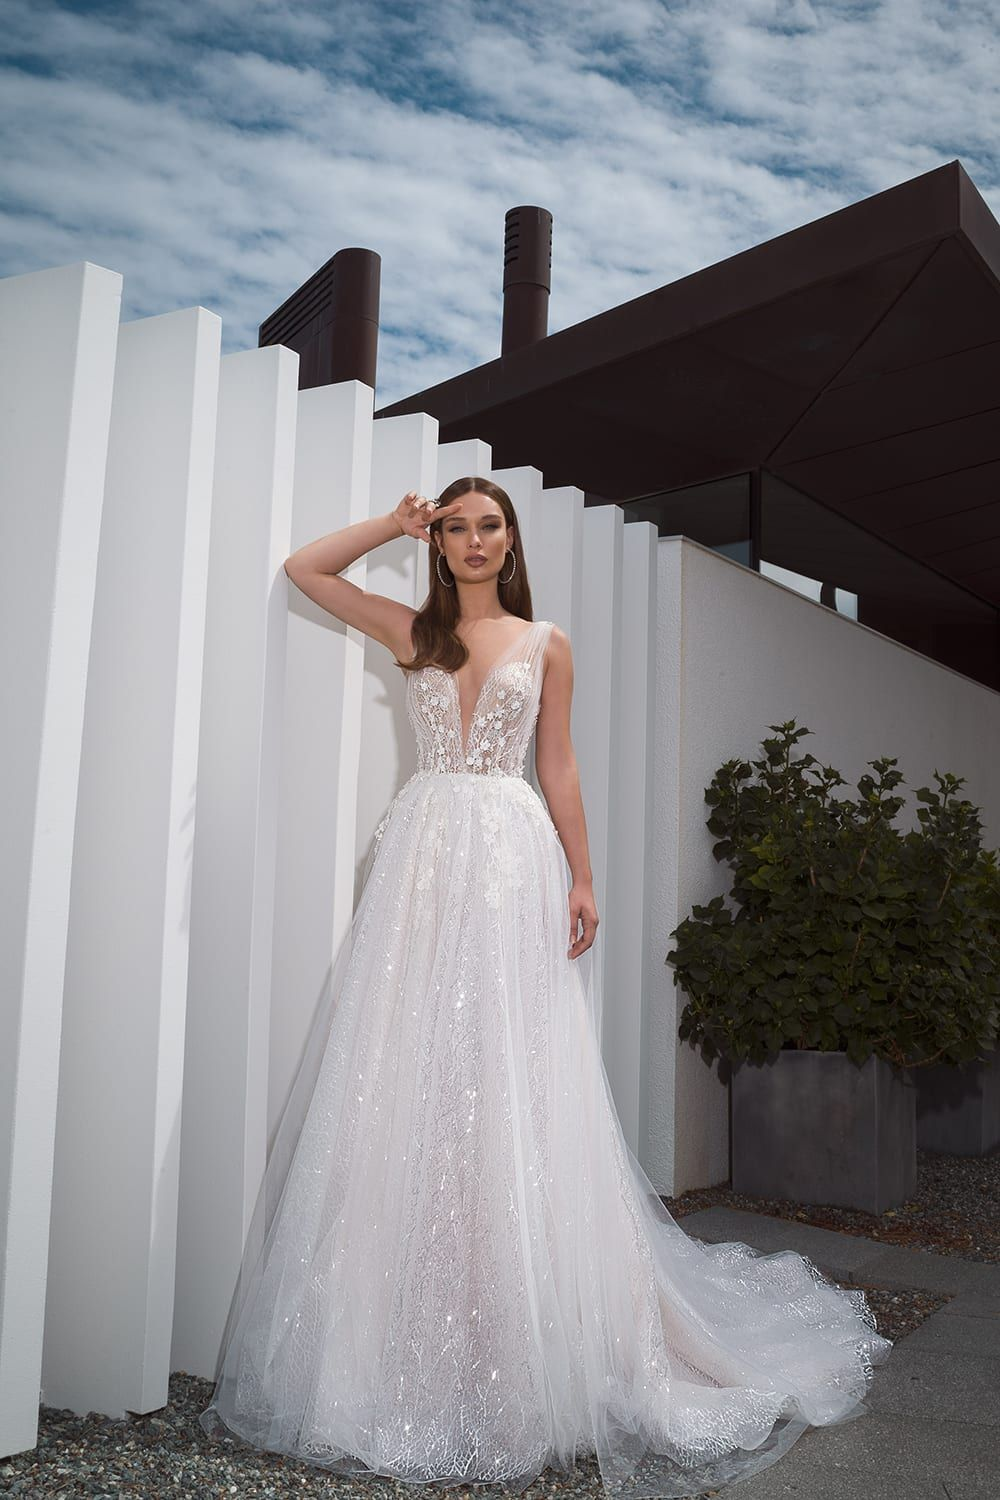 40 Dream Wedding Gowns For Every Bride In 2019 In 2020 Wedding Gowns Mermaid Wedding Gowns Beautiful Wedding Dresses [ 1500 x 1000 Pixel ]